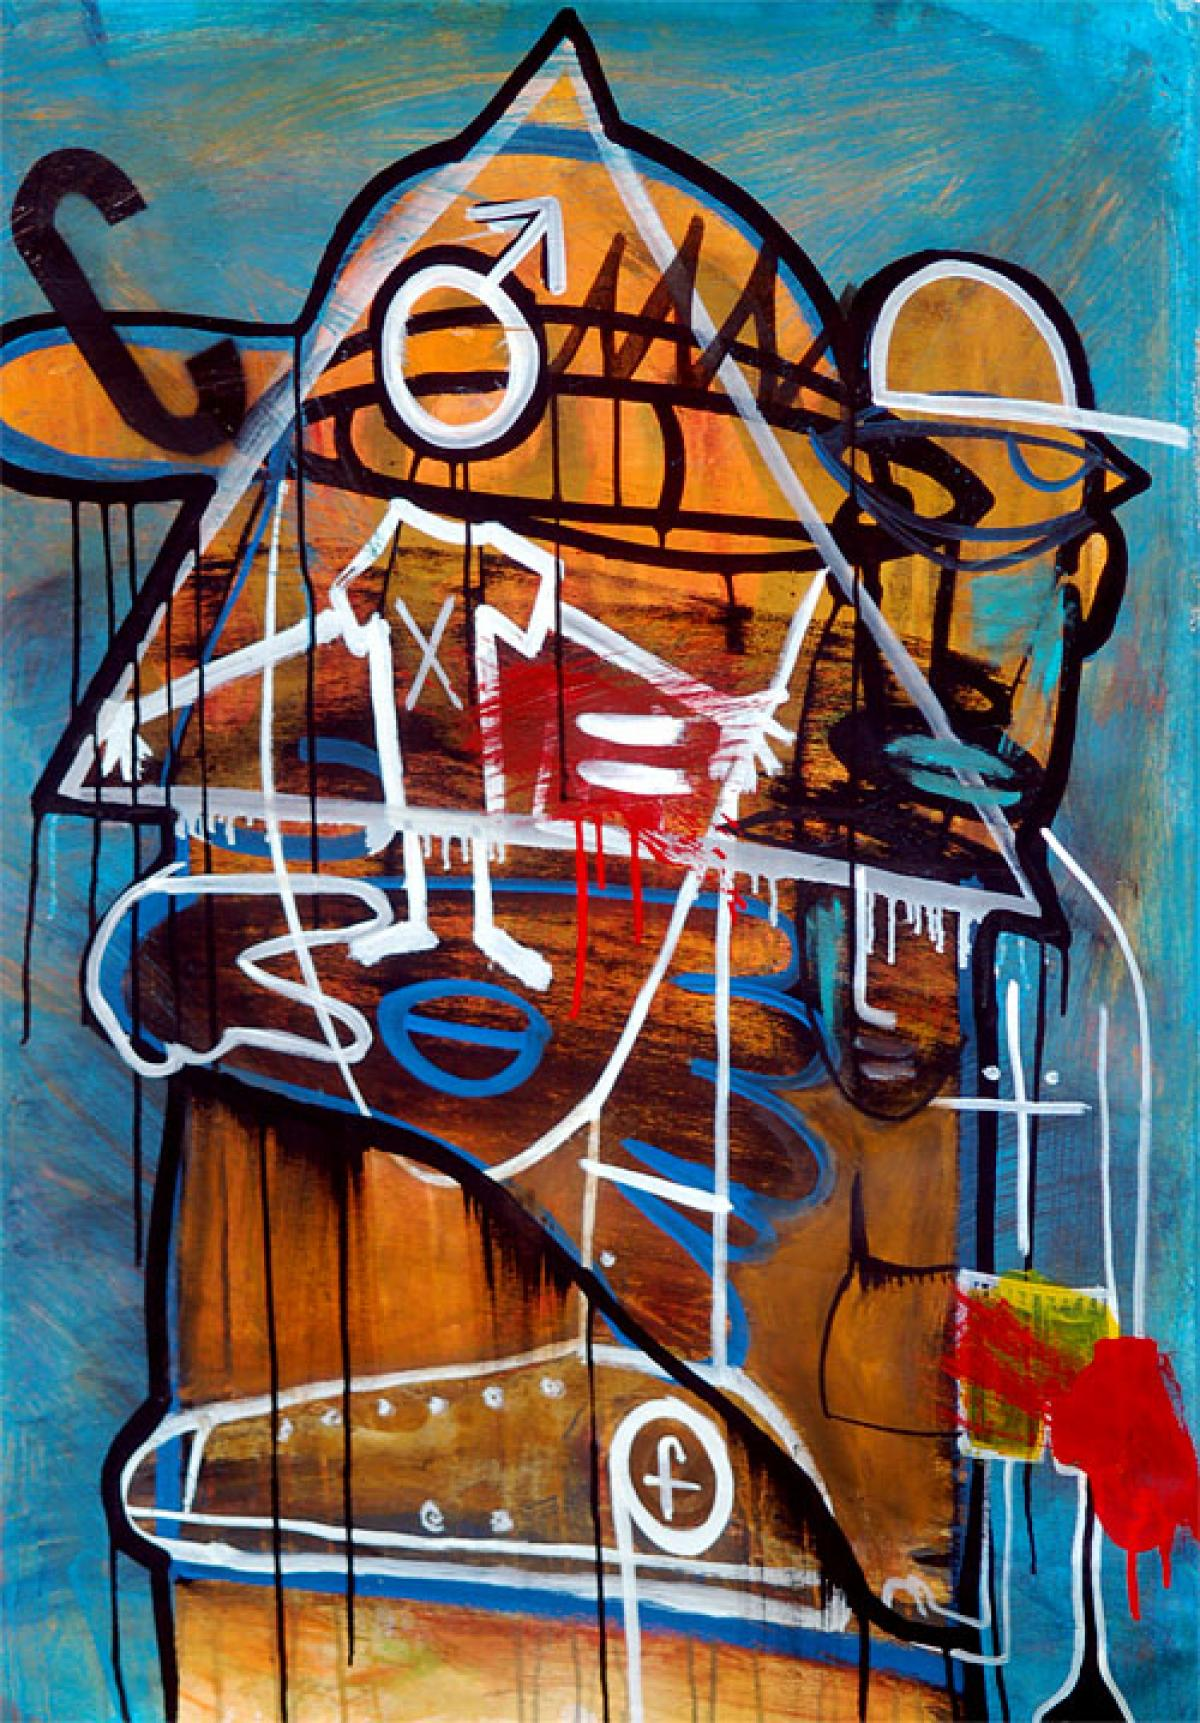 The Fighter by Jean-Michel Basquiat The Mantle